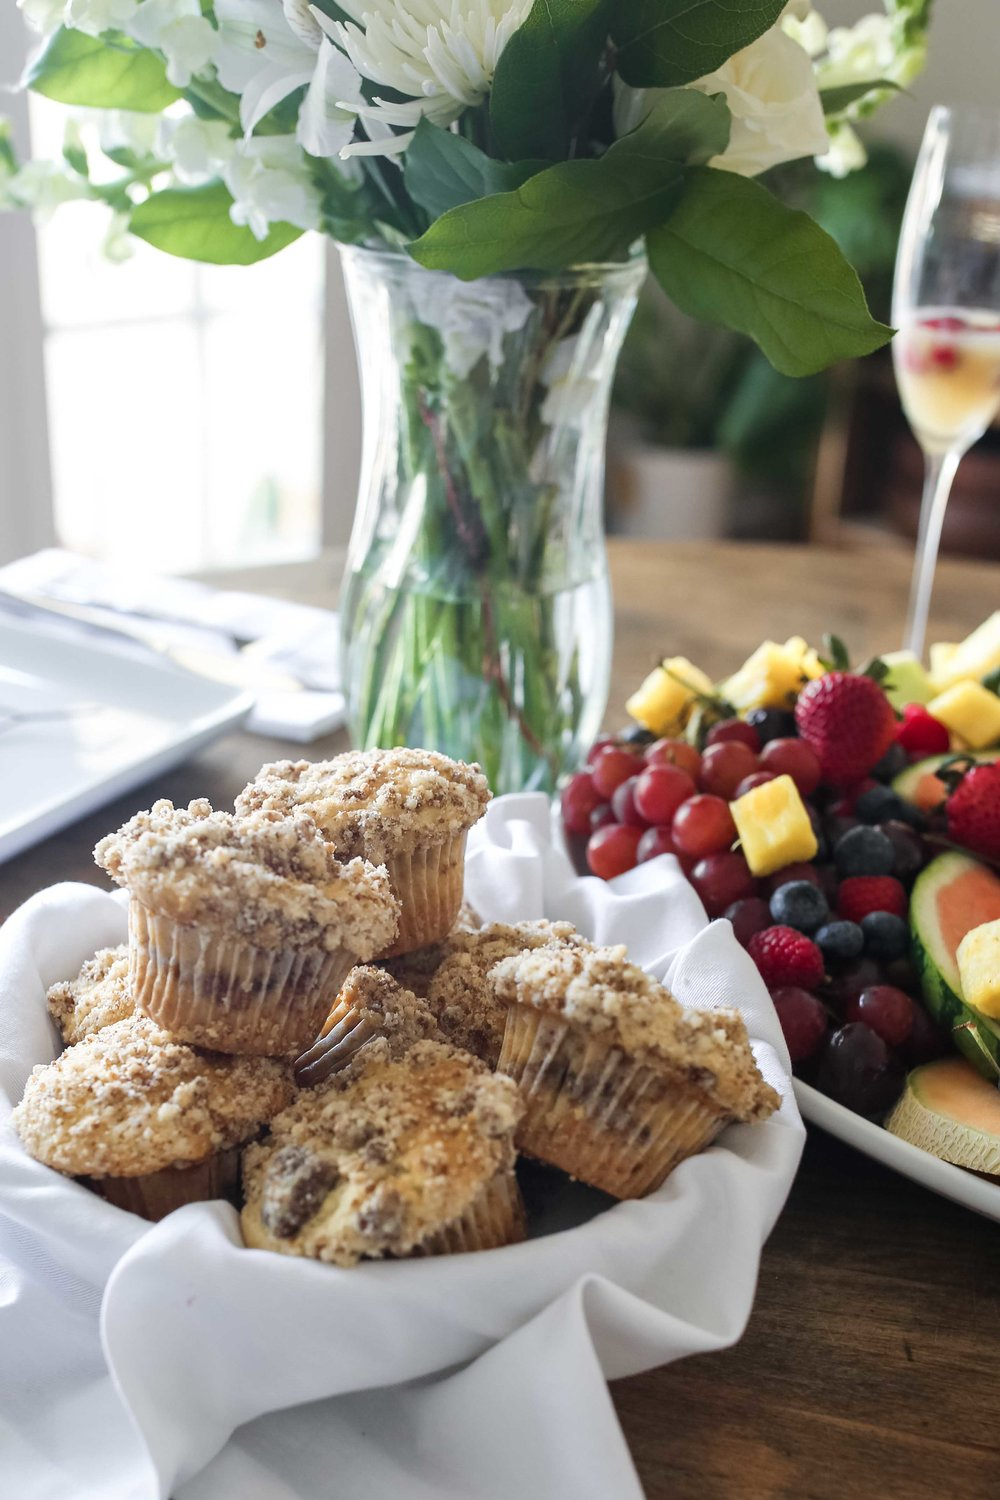 muffins and fruit california brunch american lamb